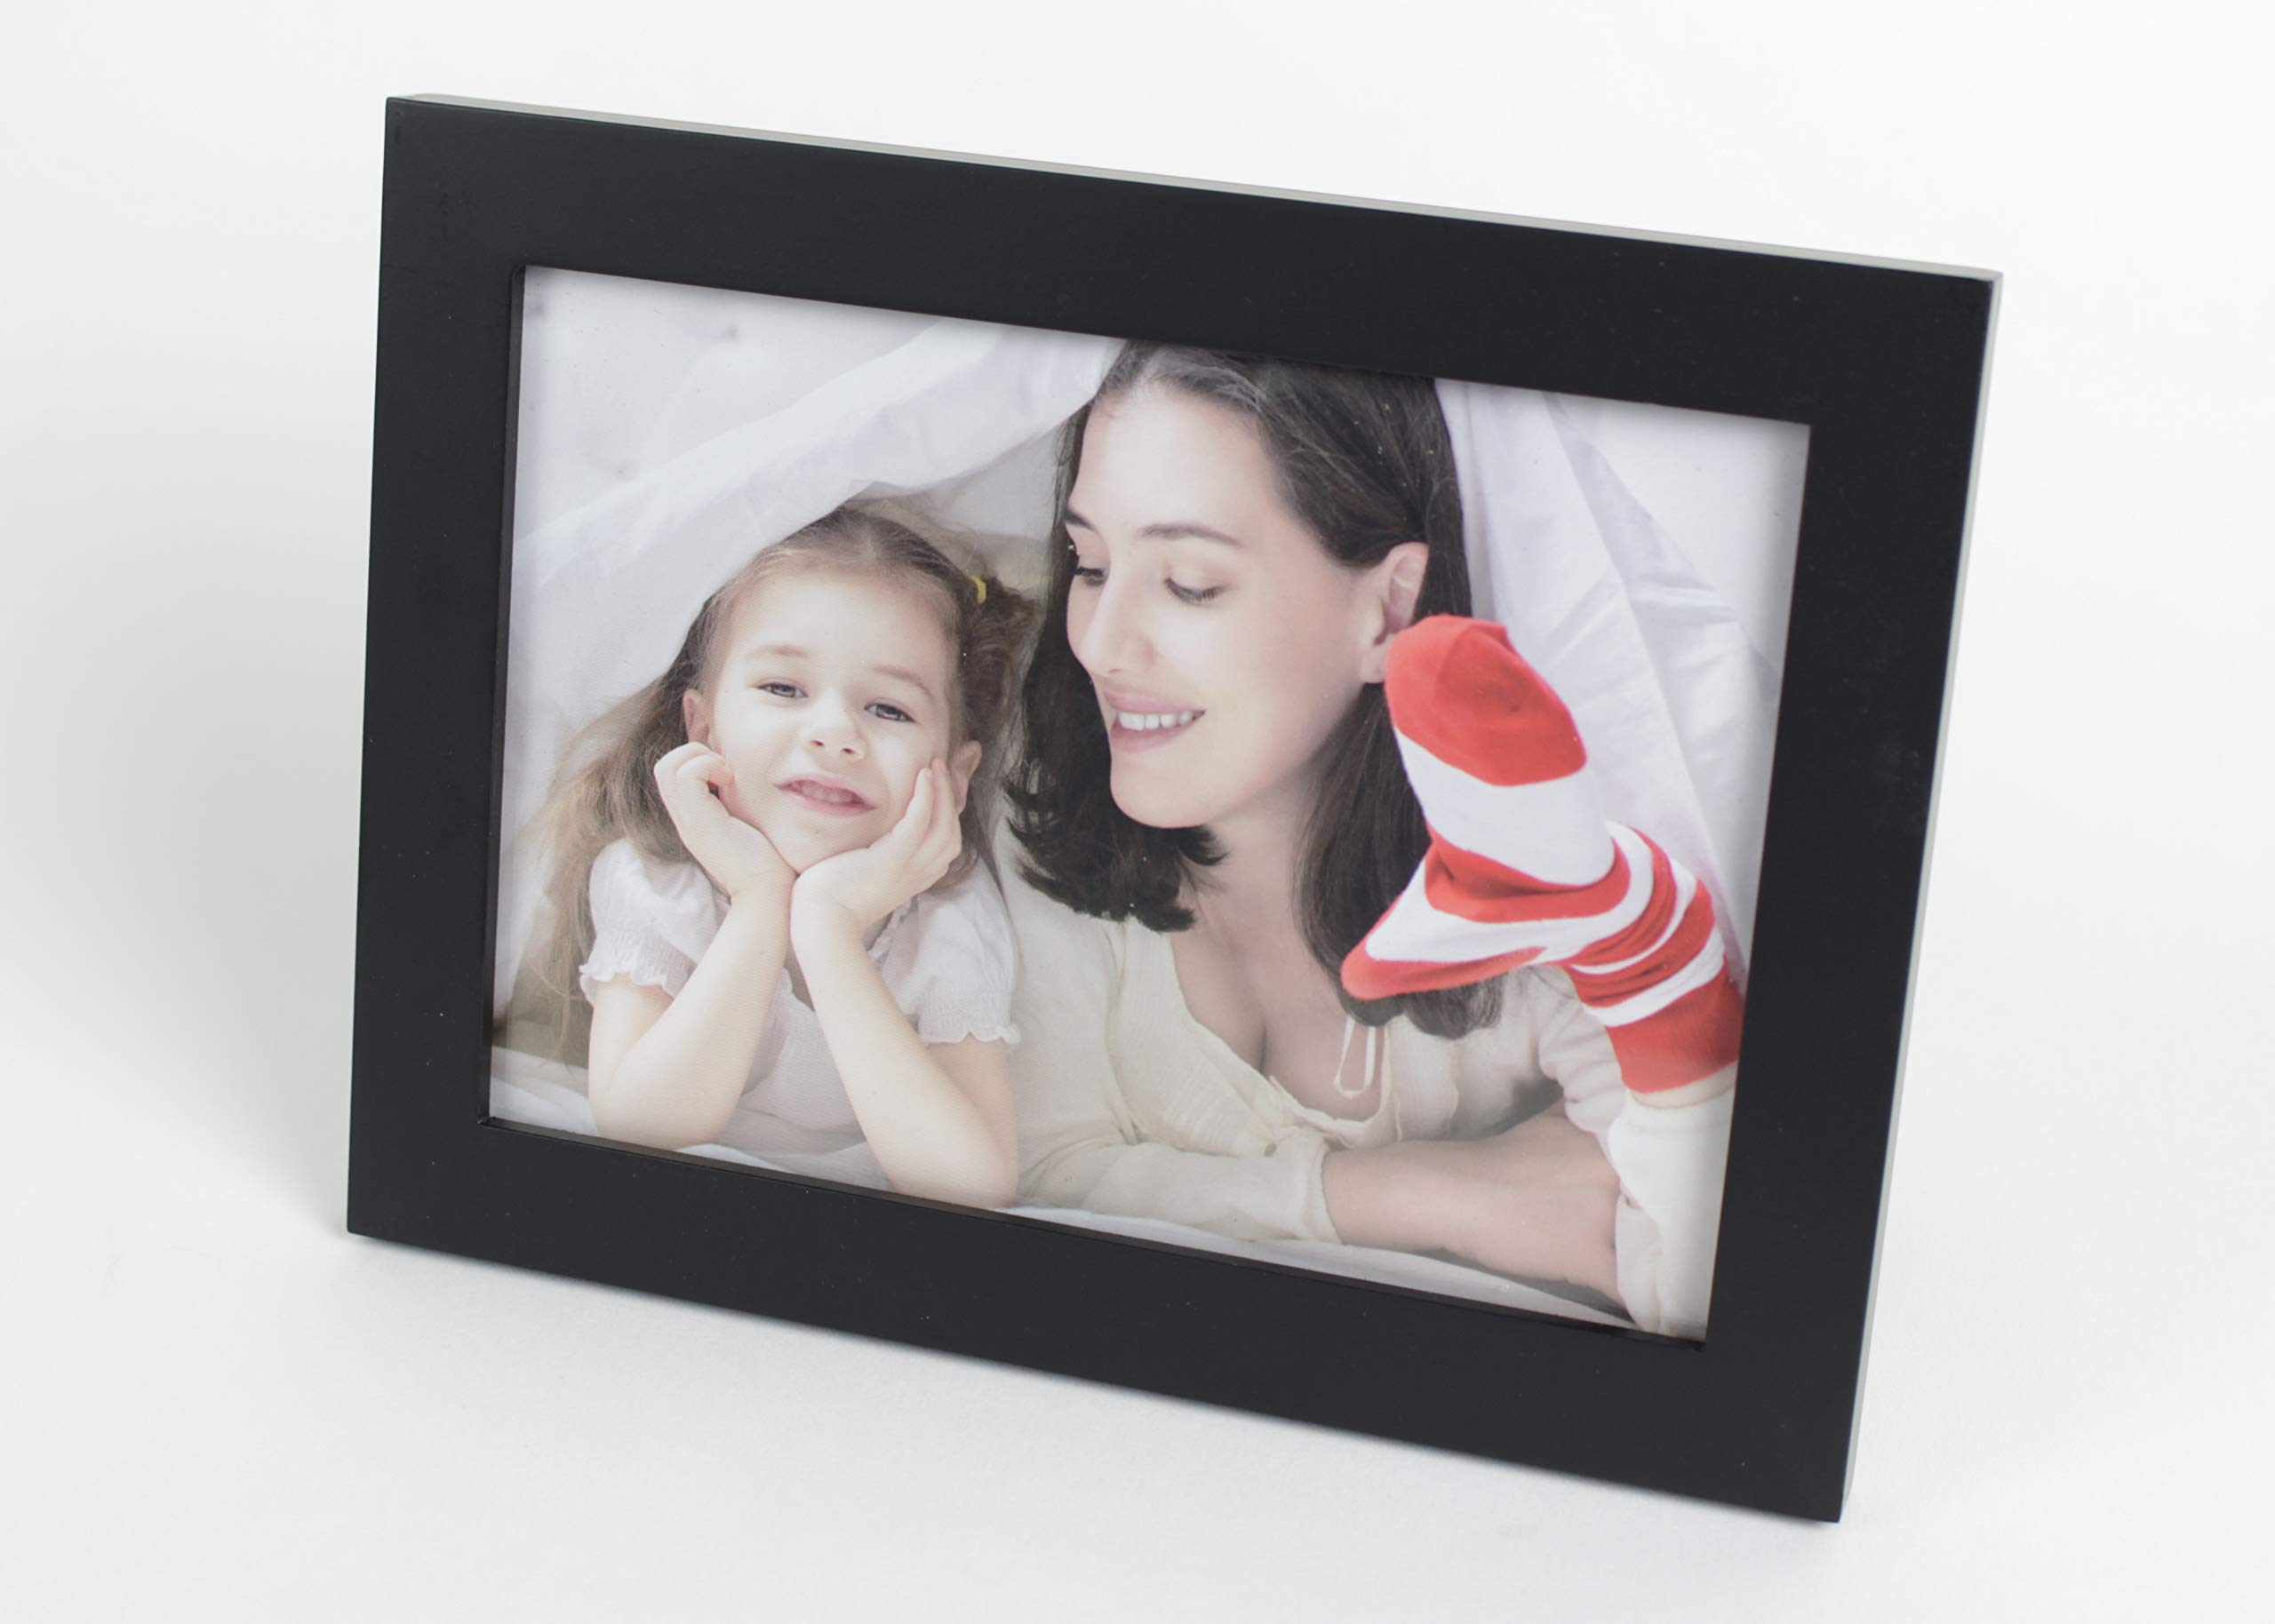 5x7 Black Wooden Picture Frames Made with Solid Wood with Glass Photo Protector for Home Decor